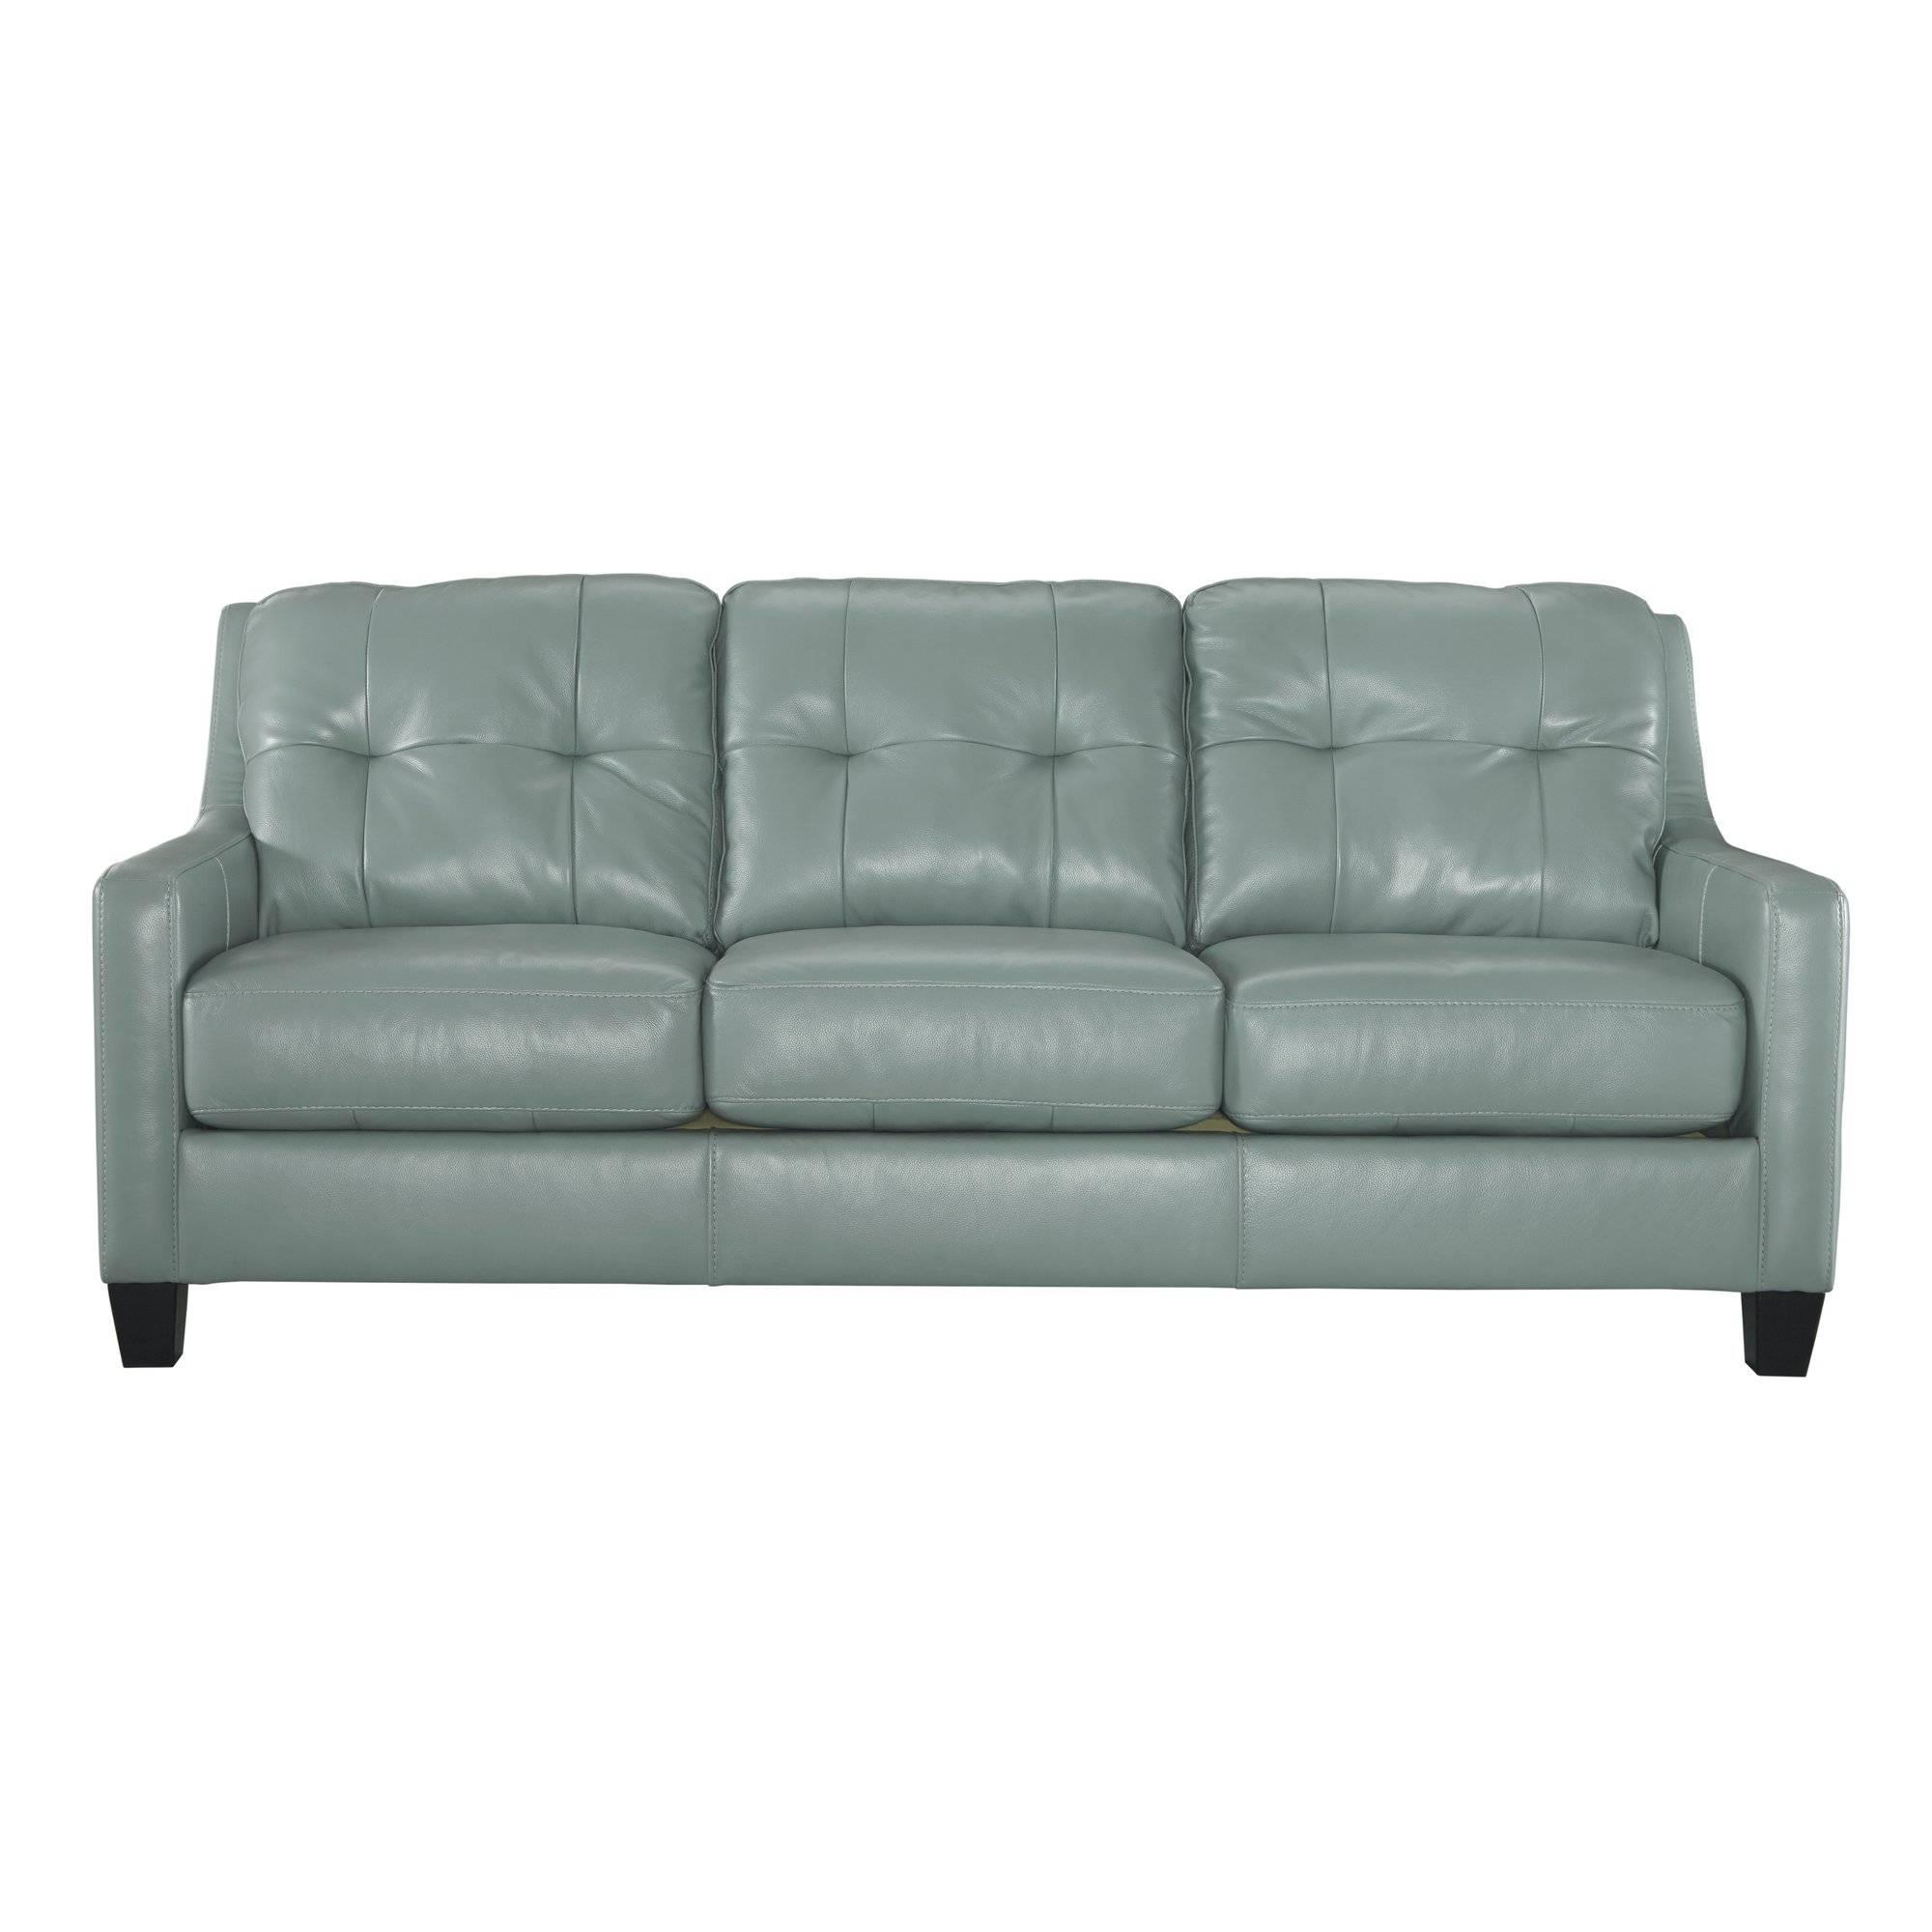 Extra Long Leather Sofa Custom Cushions King Hemnes Table F Home inside Long Modern Sofas (Image 8 of 30)